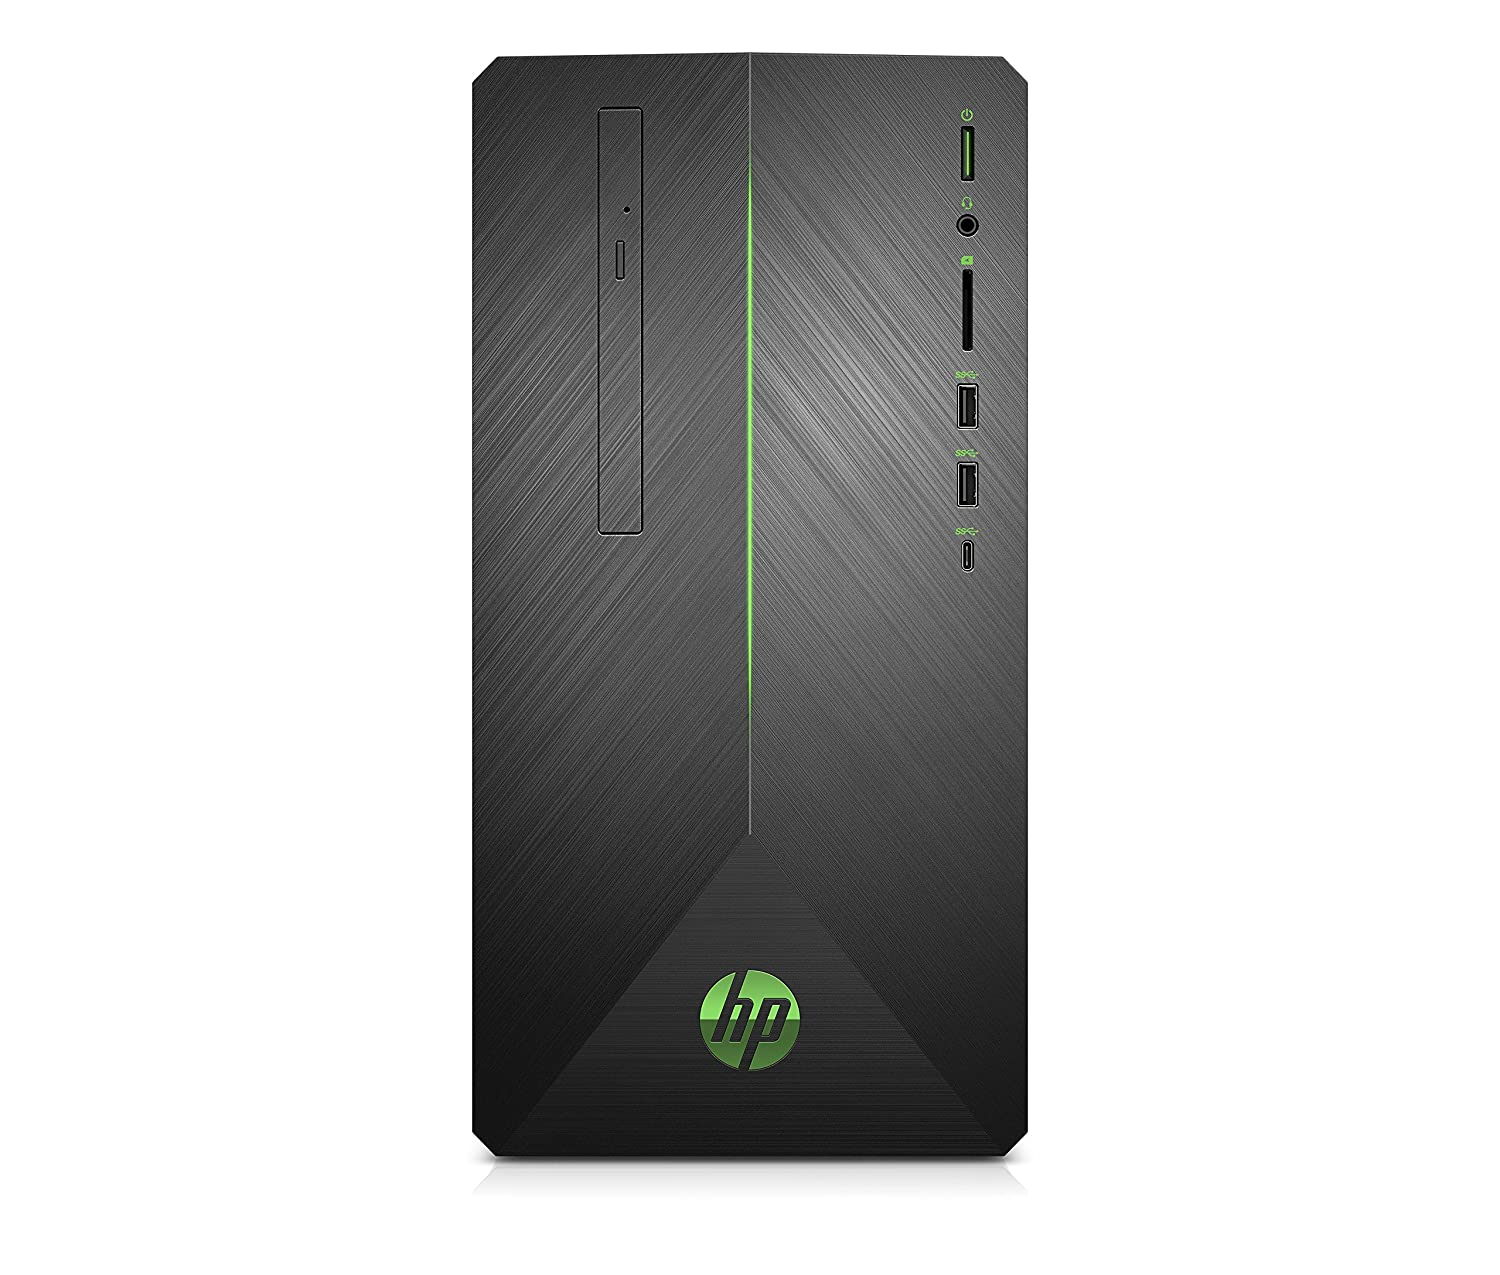 HP Pavilion Gaming Desktop Computer, AMD Ryzen 5 2400G, NVIDIA GeForce GTX 1060, 16GB RAM, 1TB hard drive, 128GB SSD, Windows 10 (690-0048, Black) (3LB74AA#ABA)